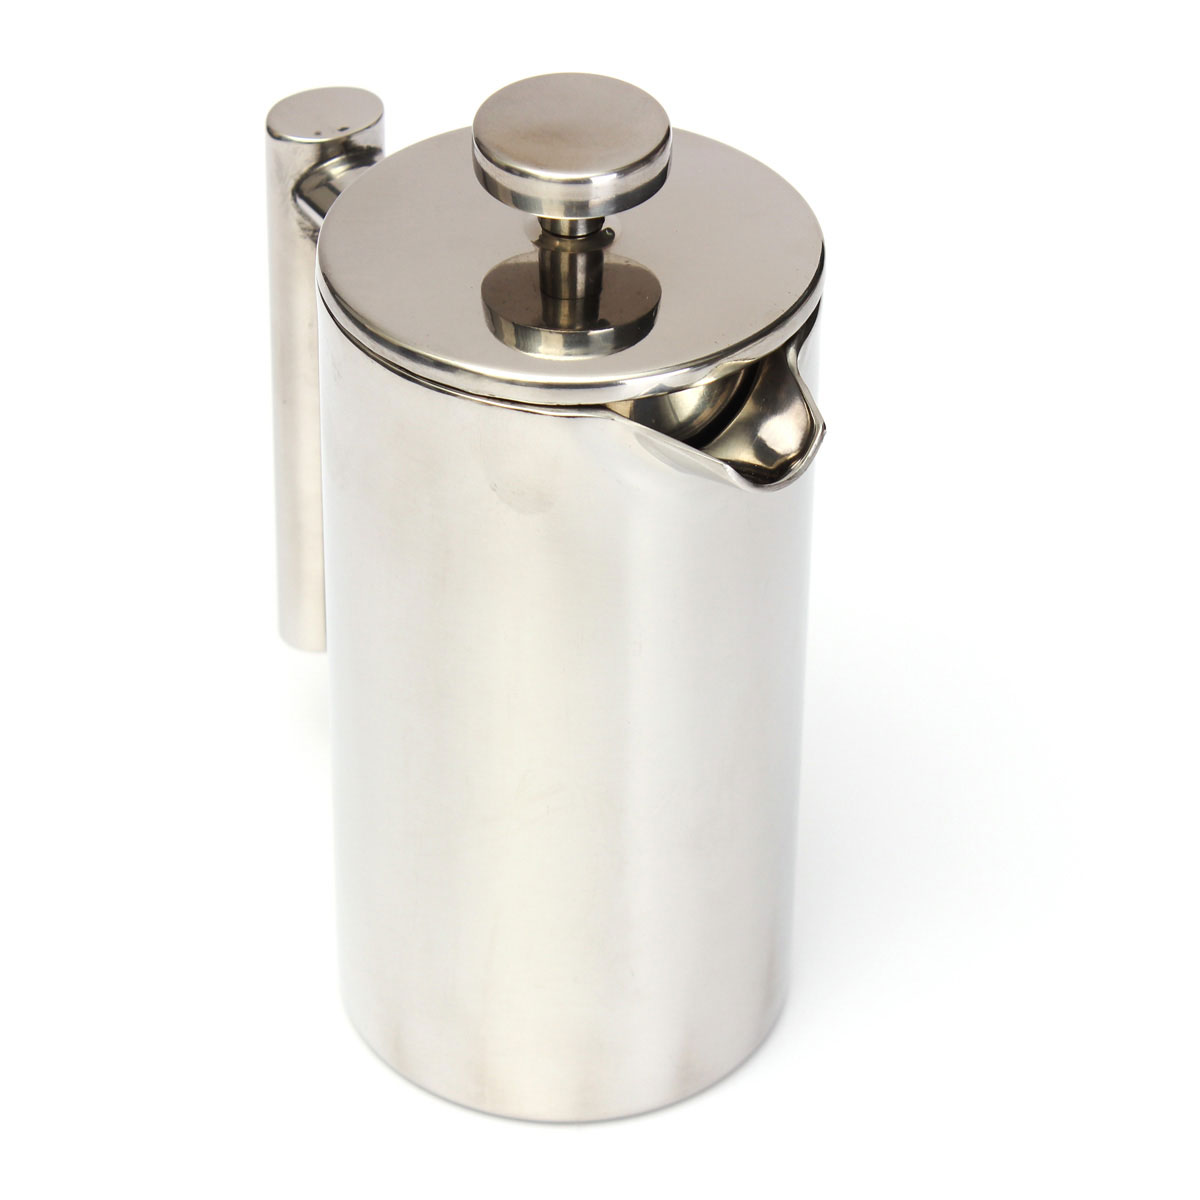 350ml double wall stainless steel coffee fliter plunger french press tea maker ebay. Black Bedroom Furniture Sets. Home Design Ideas